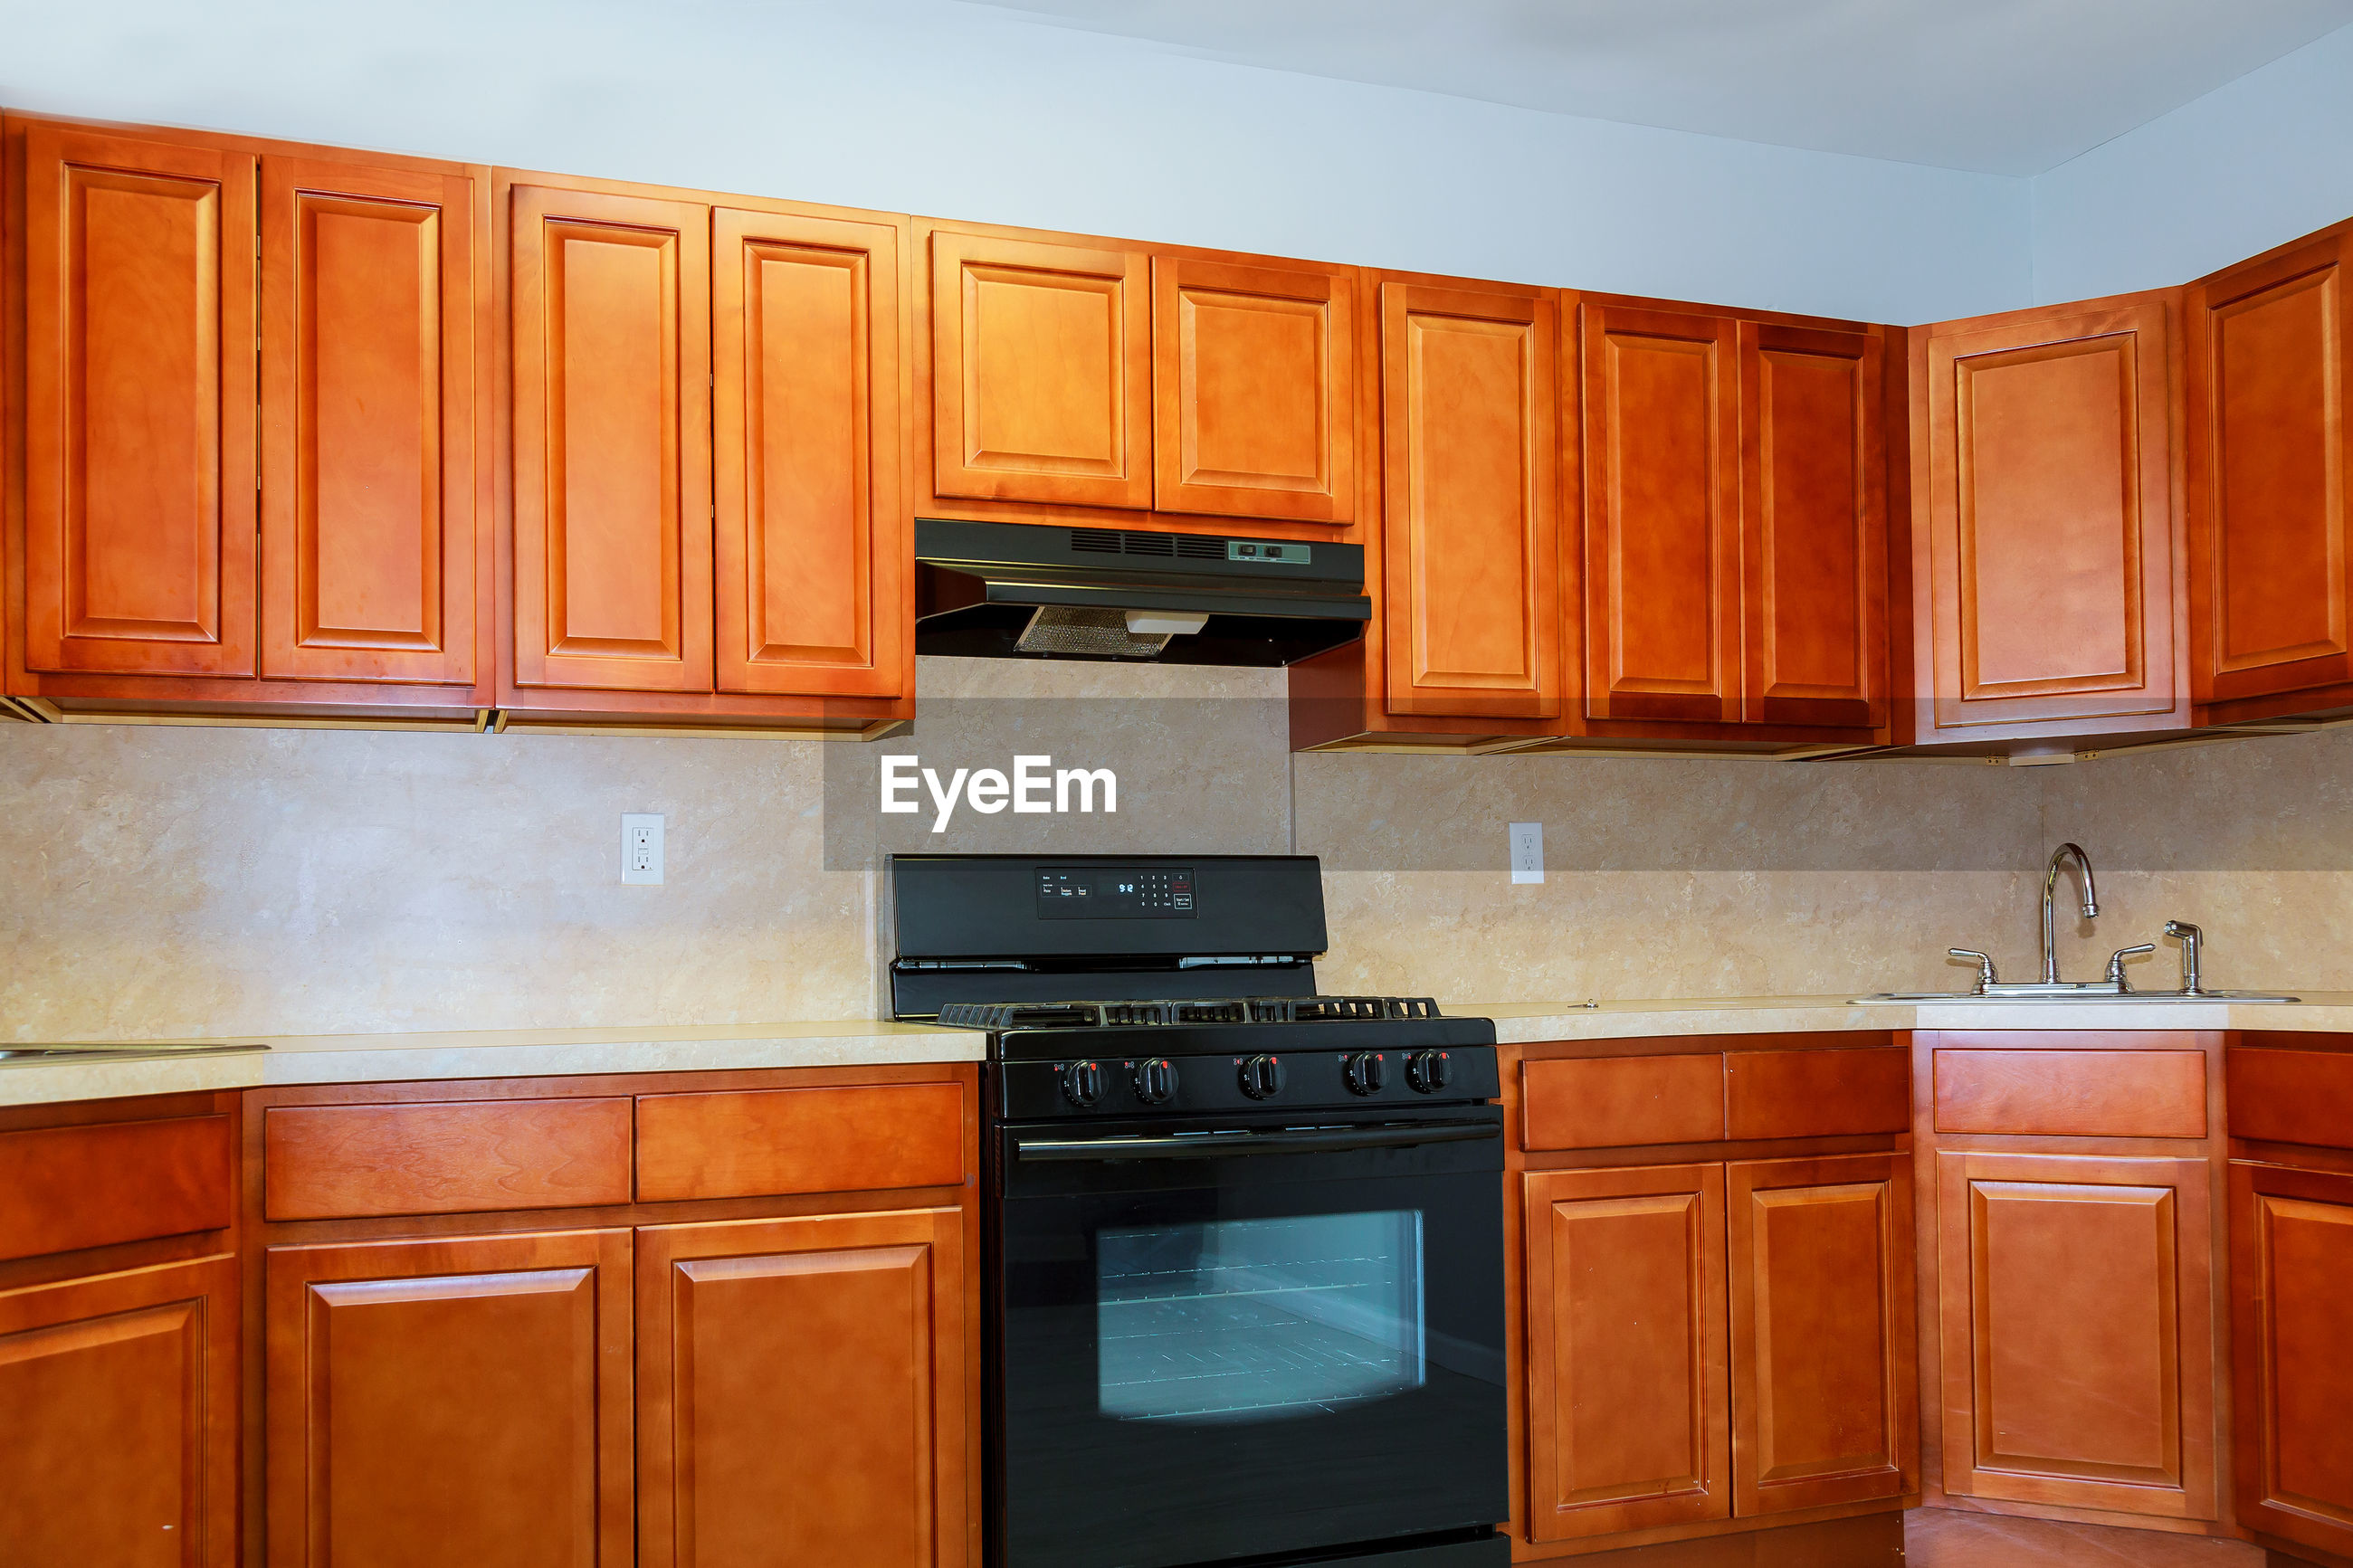 Wooden cabinets in kitchen